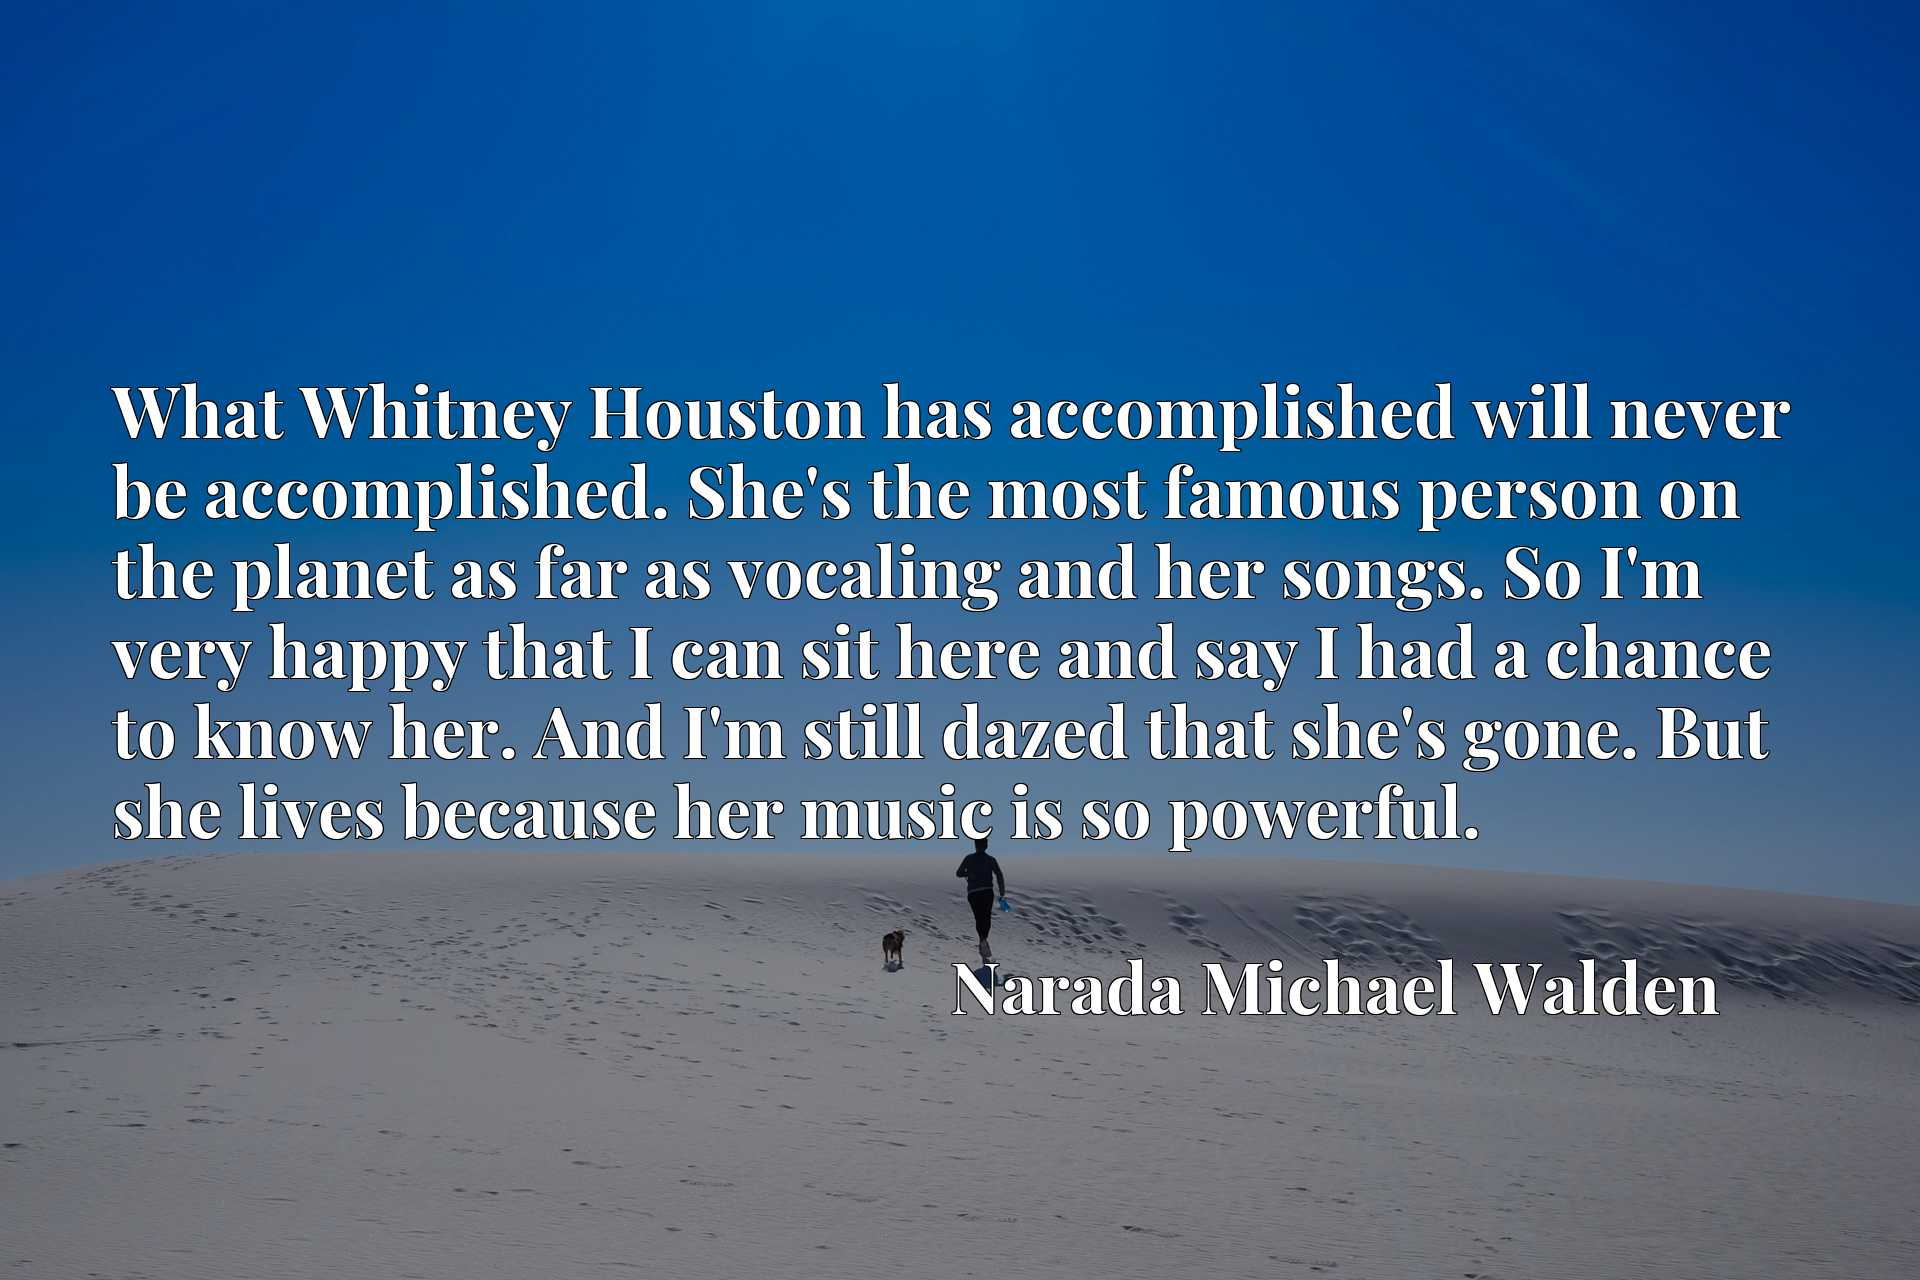 What Whitney Houston has accomplished will never be accomplished. She's the most famous person on the planet as far as vocaling and her songs. So I'm very happy that I can sit here and say I had a chance to know her. And I'm still dazed that she's gone. But she lives because her music is so powerful.